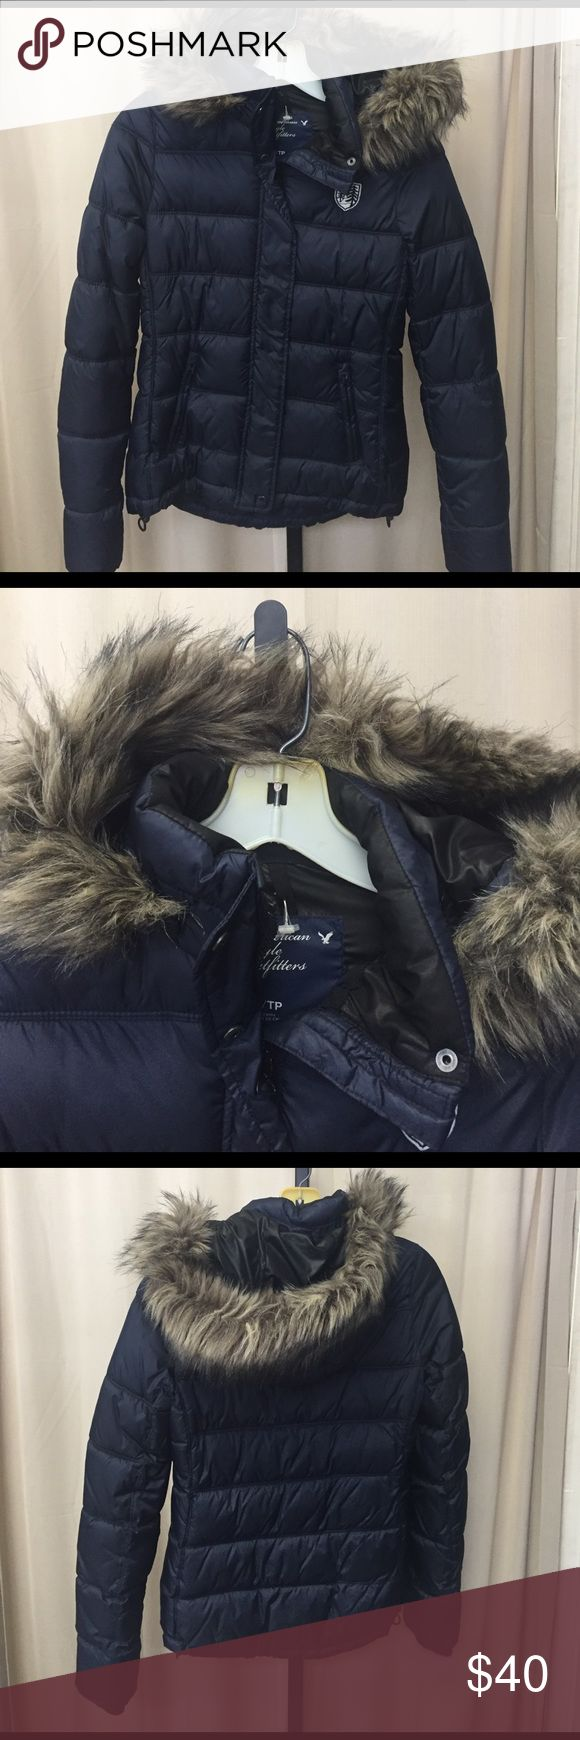 American eagle jacket size XS ~NO TRADES~REASONABLE OFFERS ACCEPTED~PLEASE ASK ALL QUESTIONS BEFORE PURCHASING~ALL OFFERS MUST BE MADE THROUGH THE OFFER BUTTON. OFFERS LEFT IN COMMENTS WONT BE ACKNOWLEDGED~NO LOWBALL OFFERS~NO HOLDS American Eagle Outfitters Jackets & Coats